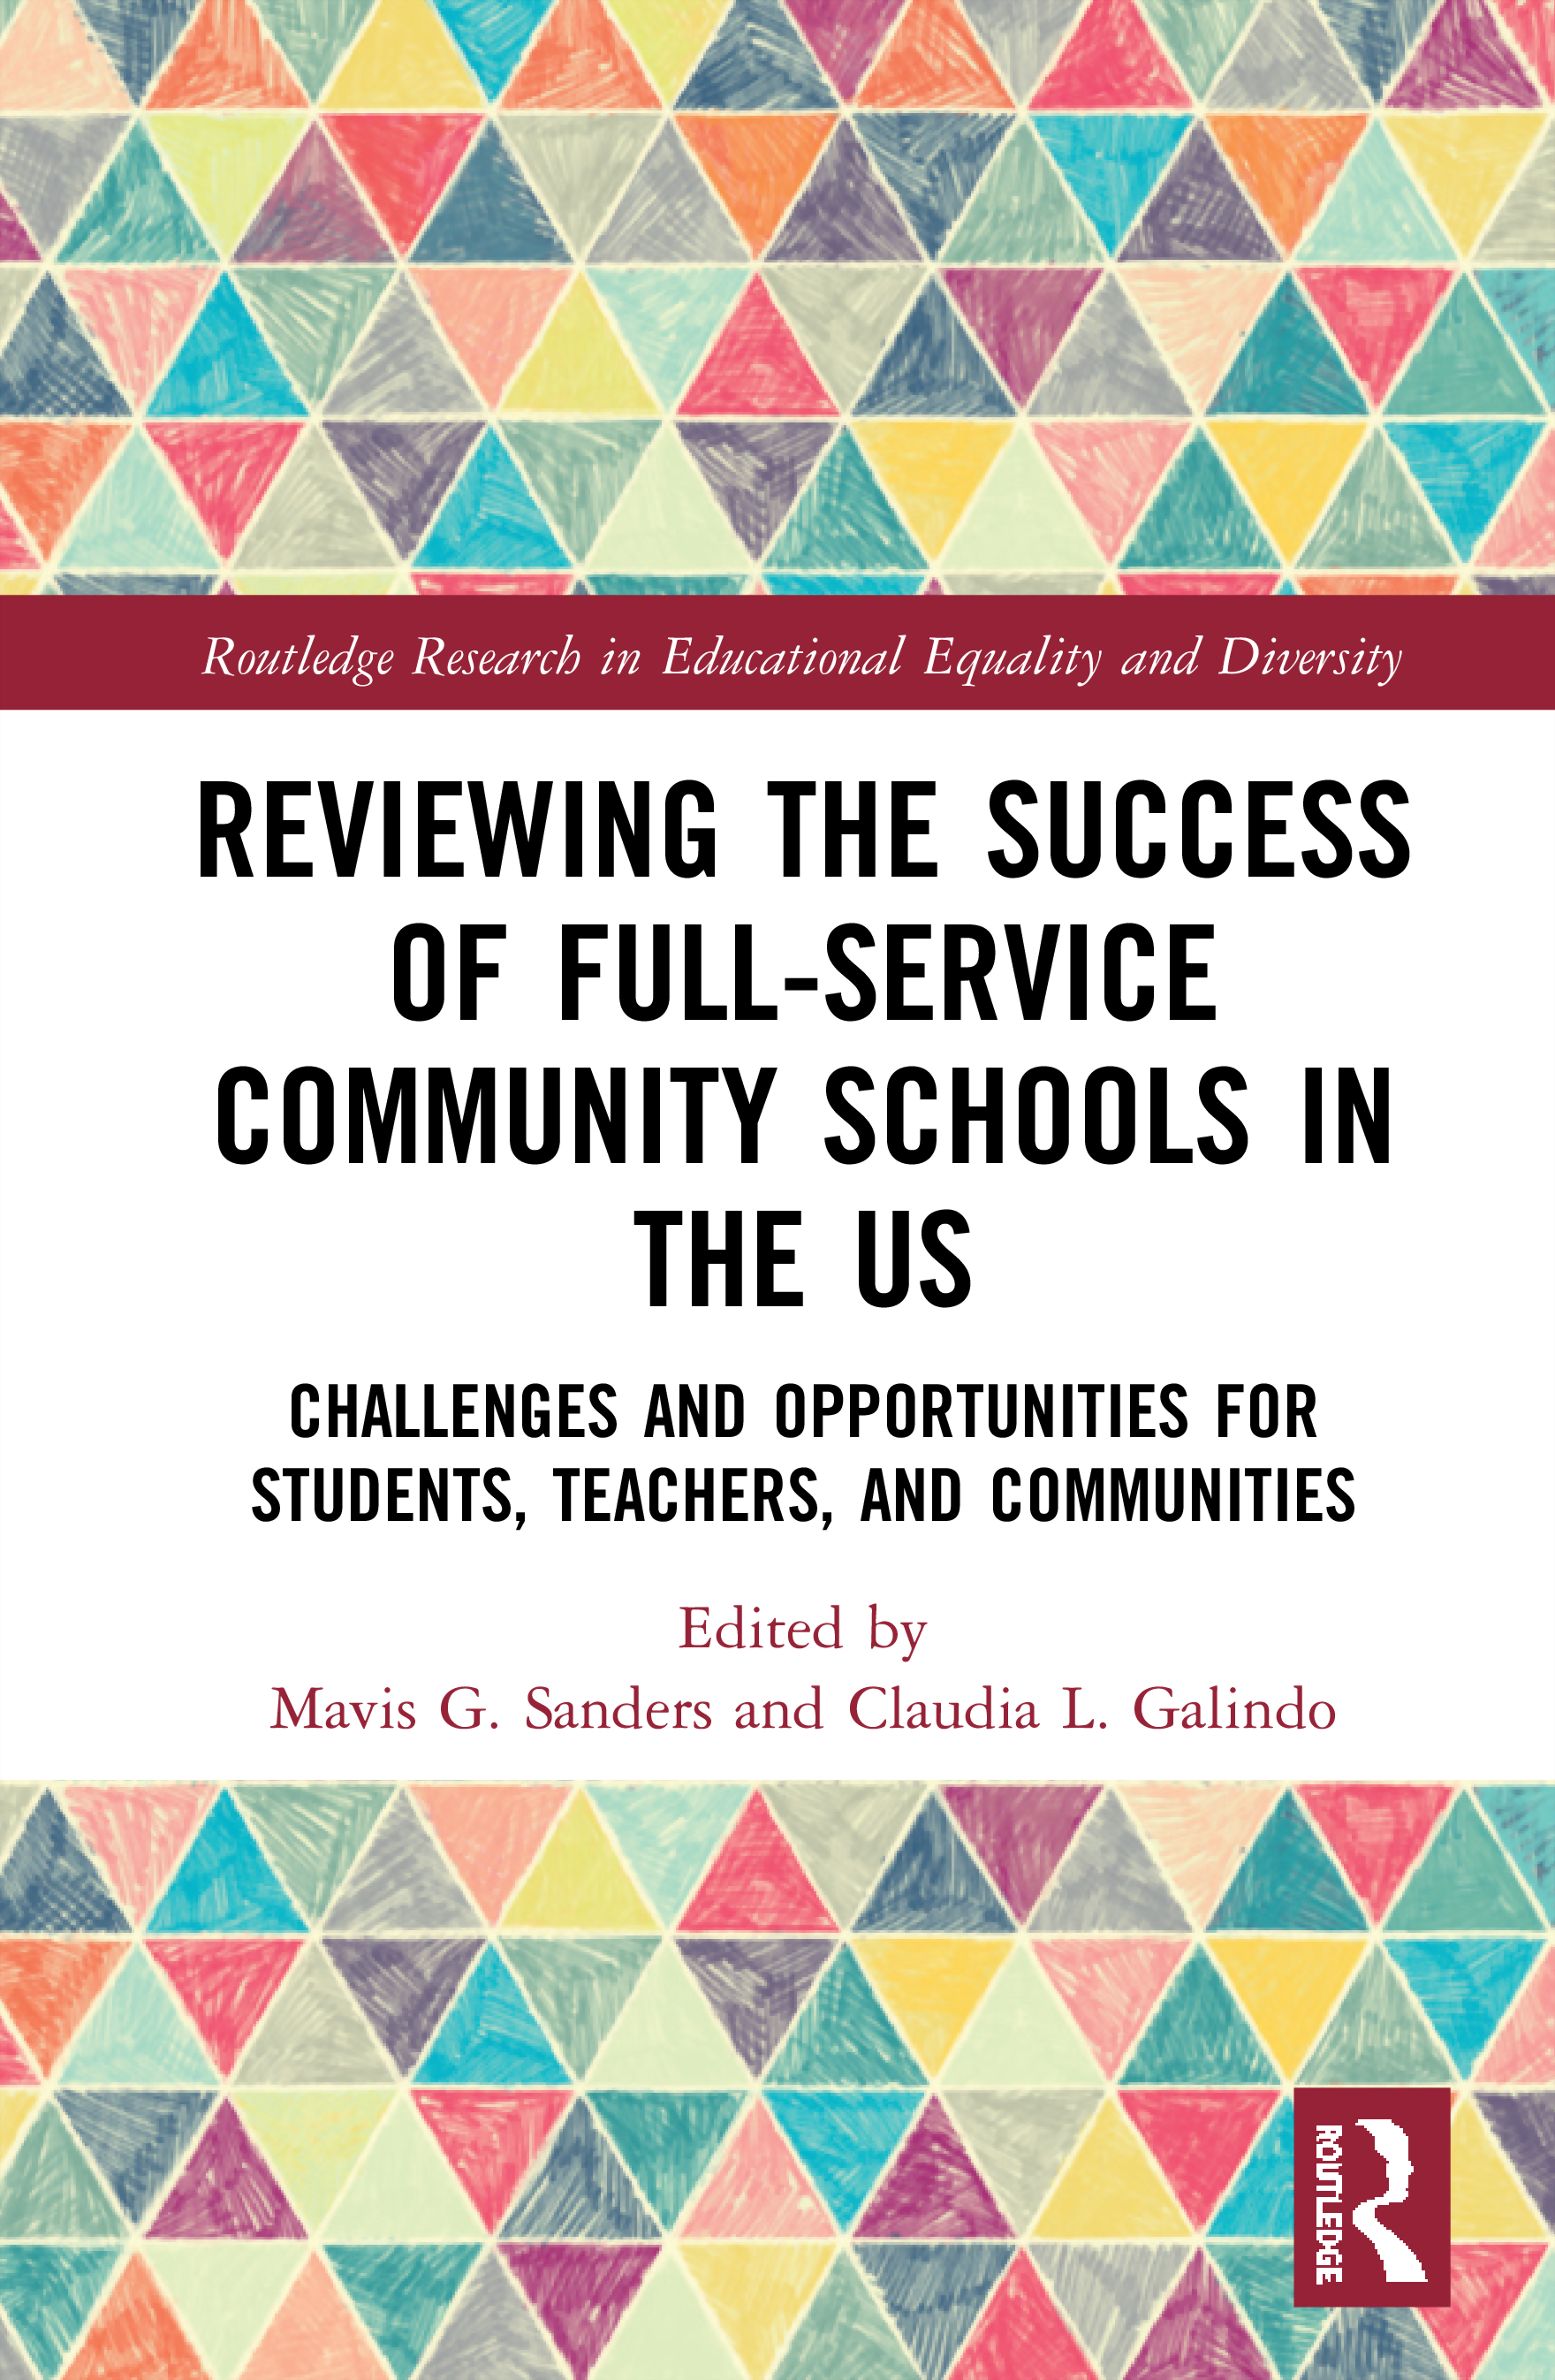 Reviewing the Success of Full-Service Community Schools in the US: Challenges and Opportunities for Students, Teachers, and Communities book cover